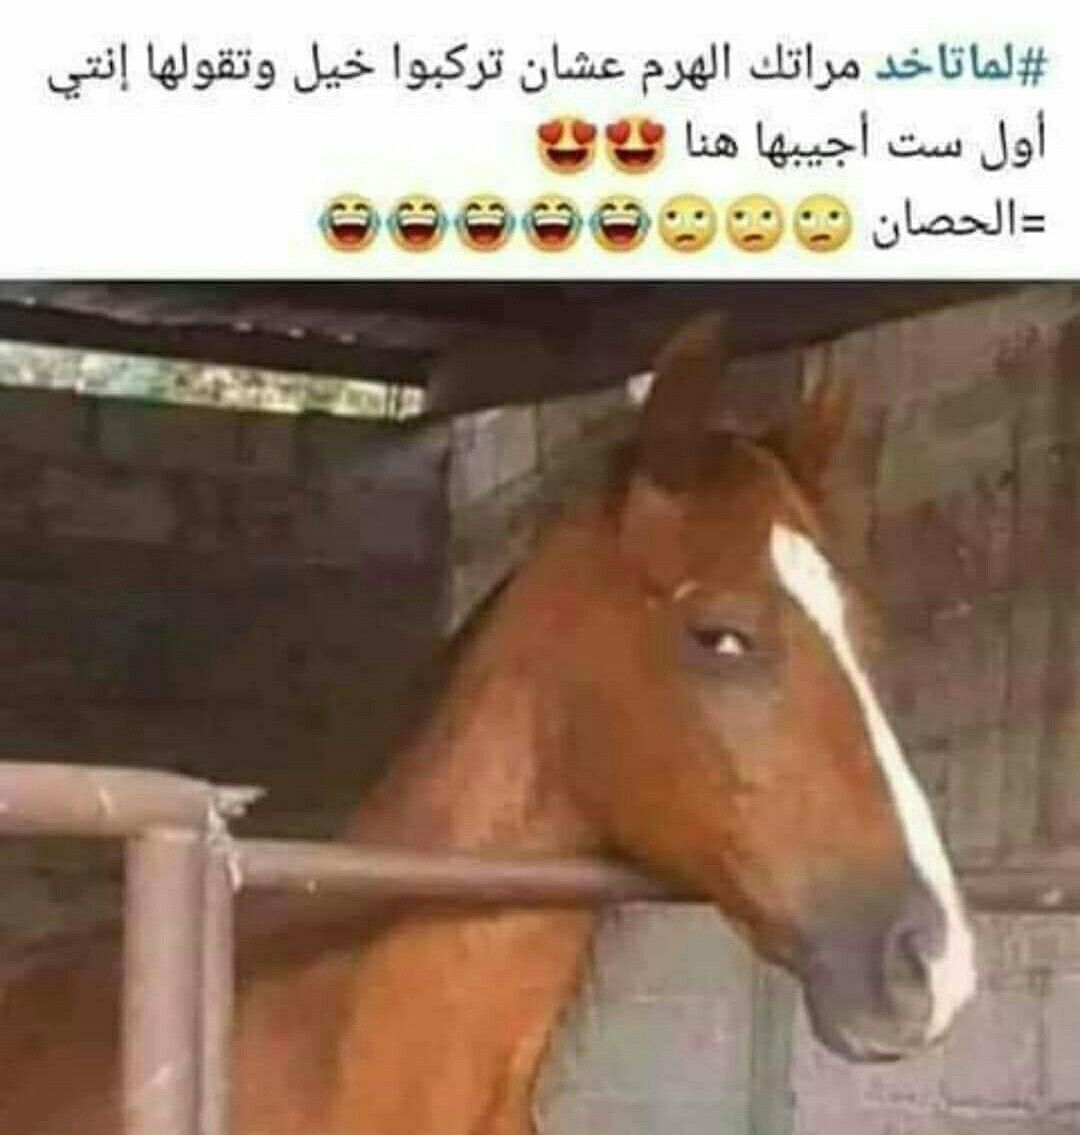 Pin By Mahmoud Abdel Rahman On بالعربى Funny Pictures Funny Memes Morning Humor